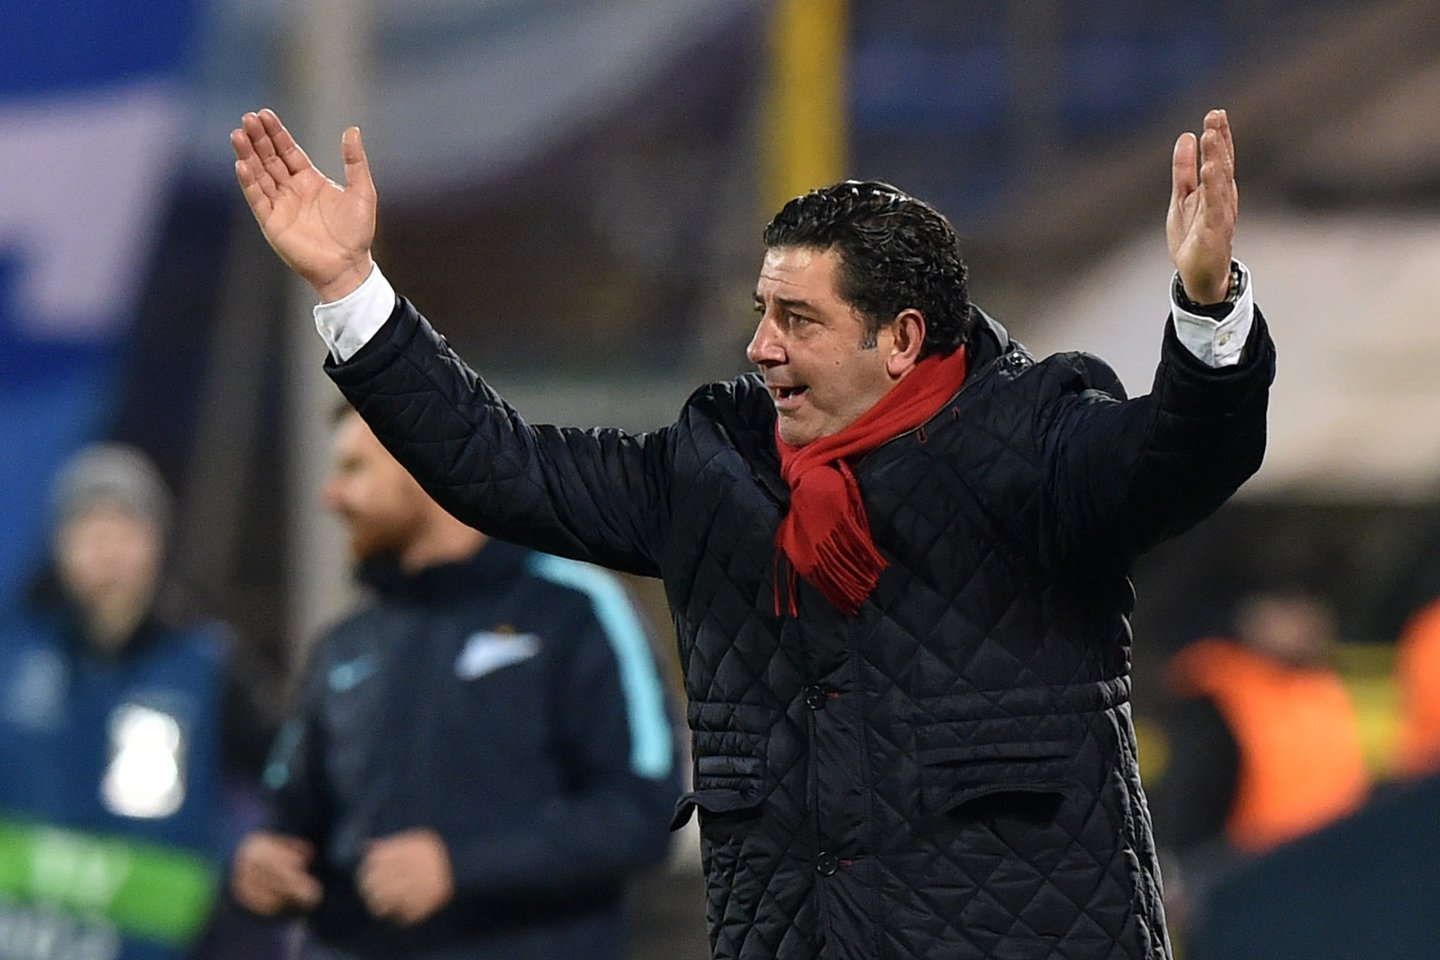 Benfica's coach Rui Vitoria reacts during the second-leg round of 16 UEFA Champions League football match FC Zenit vs SL Benfica at the Petrovsky stadium in St. Petersburg on March 9, 2016. AFP PHOTO / KIRILL KUDRYAVTSEV / AFP / KIRILL KUDRYAVTSEV (Photo credit should read KIRILL KUDRYAVTSEV/AFP/Getty Images)